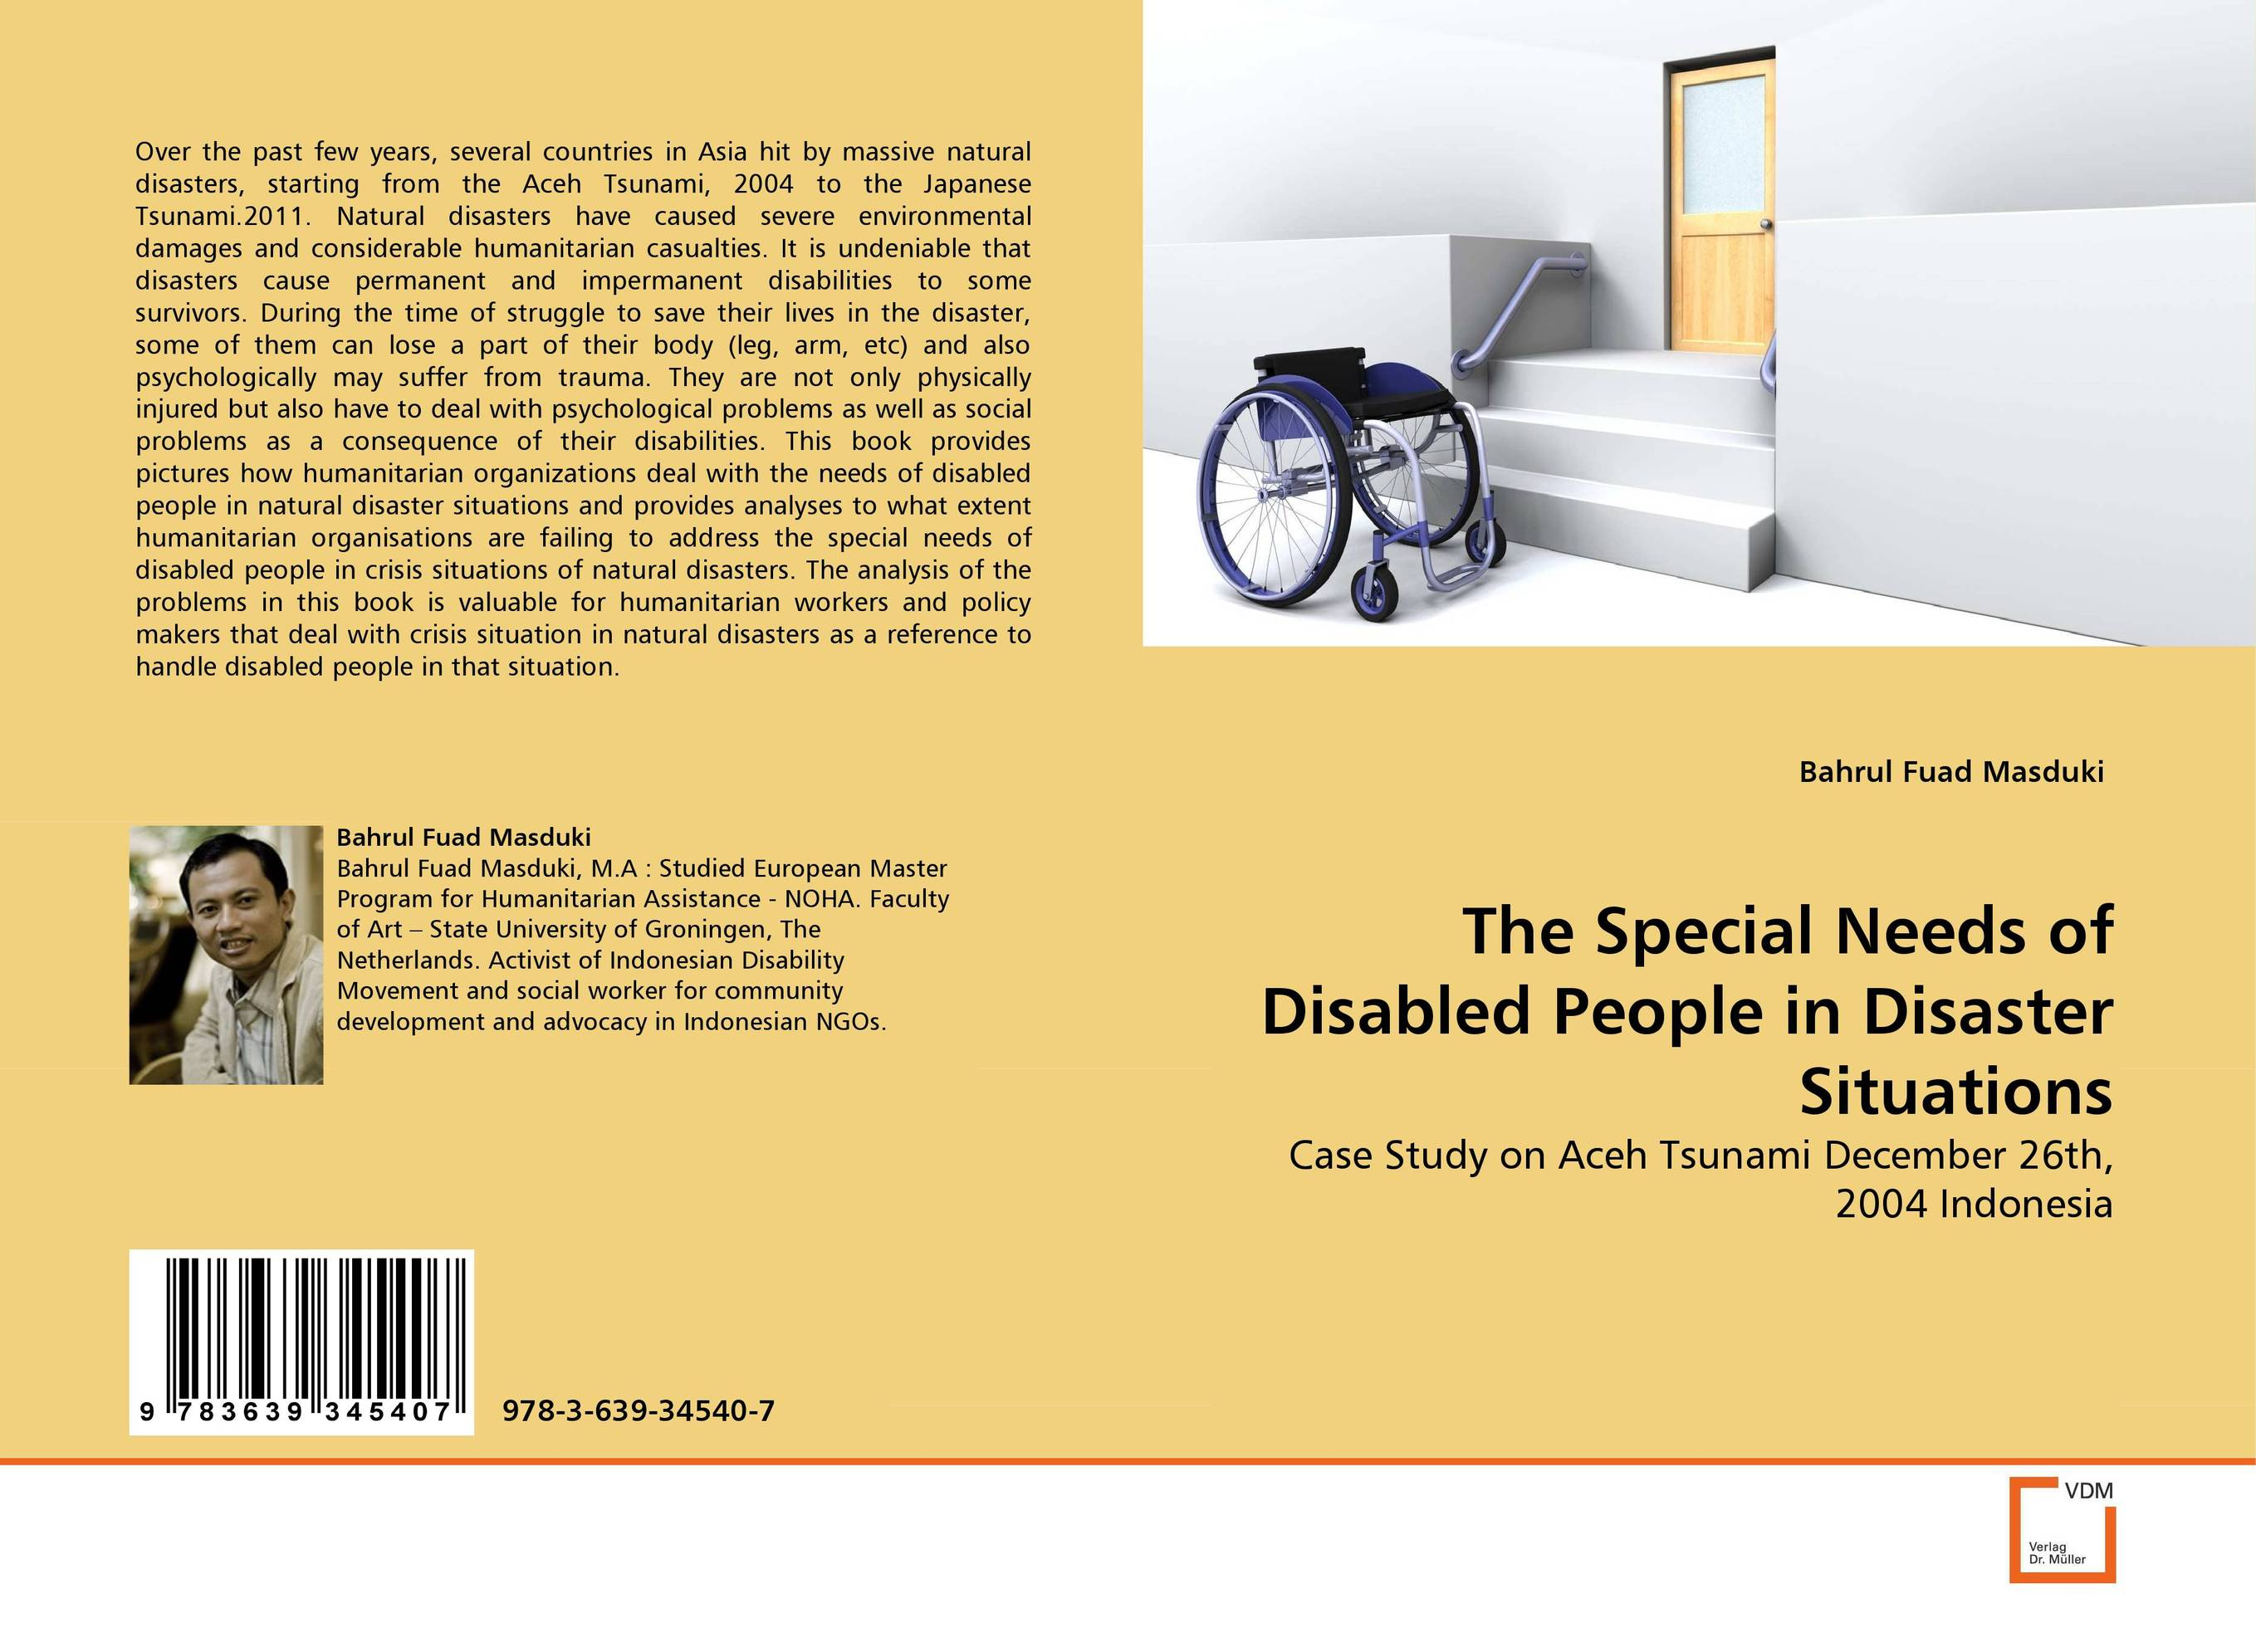 The Special Needs of Disabled People in Disaster Situations alvin ho allergic to camping hiking and other natural disasters